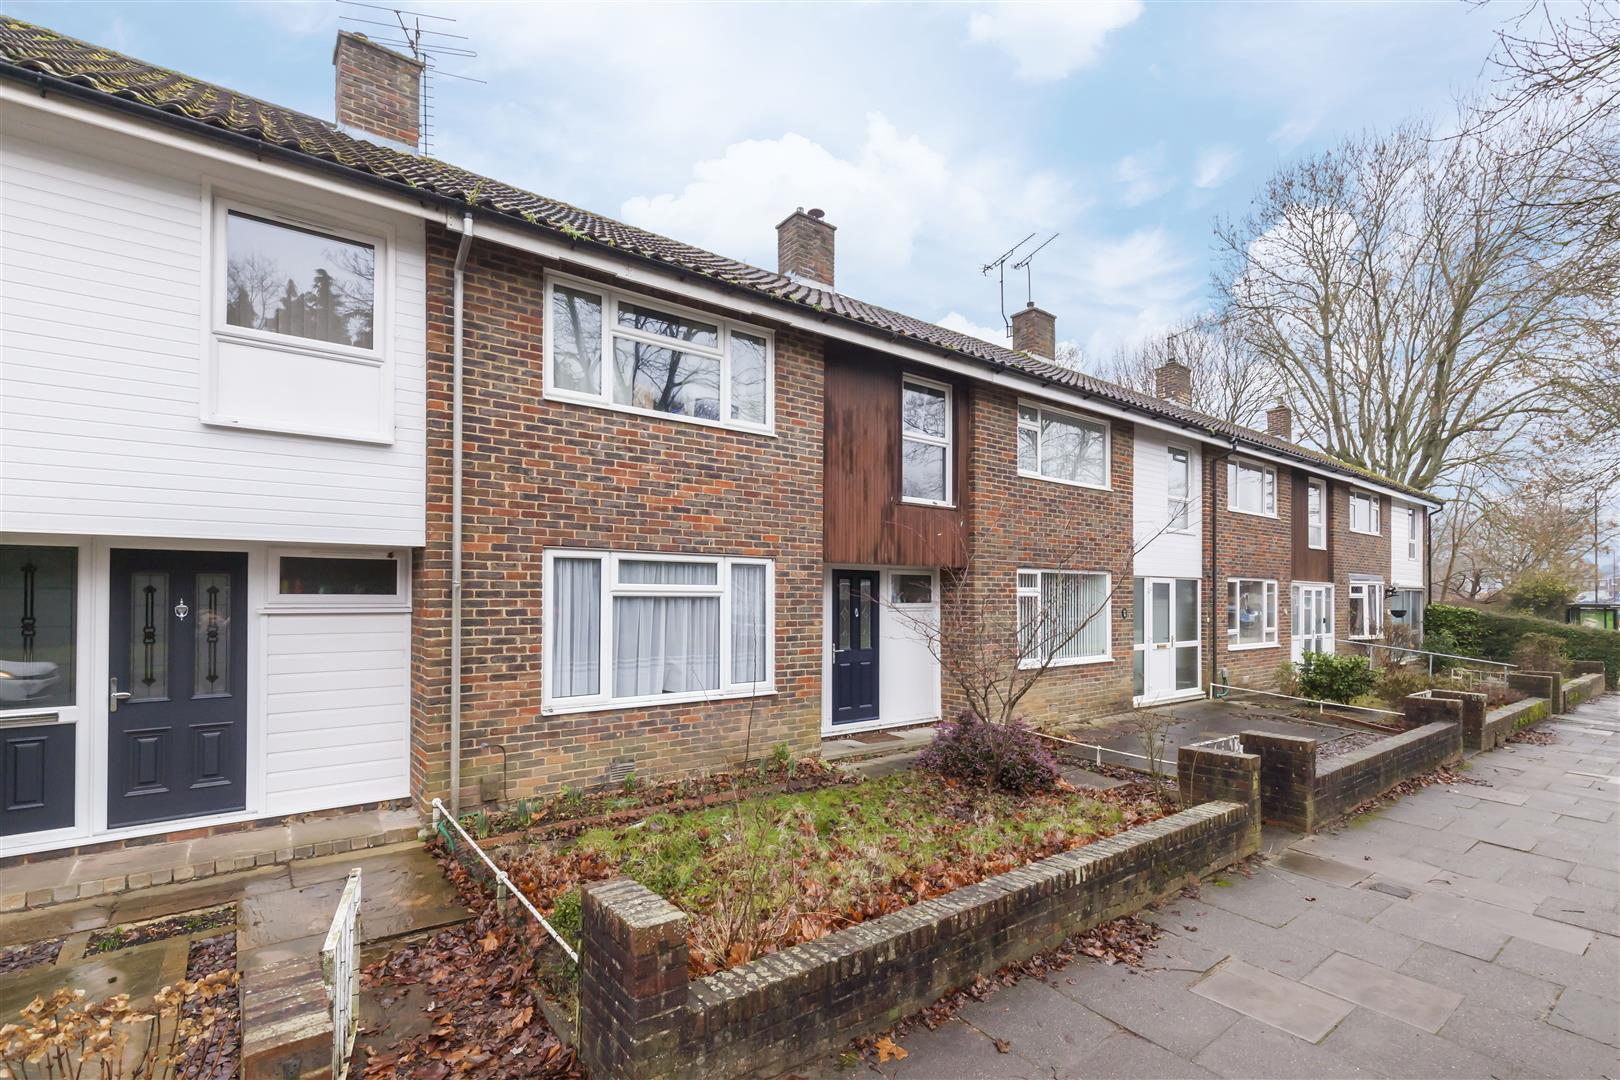 3 bed terraced-house for sale in Furnace Drive, Crawley, RH10